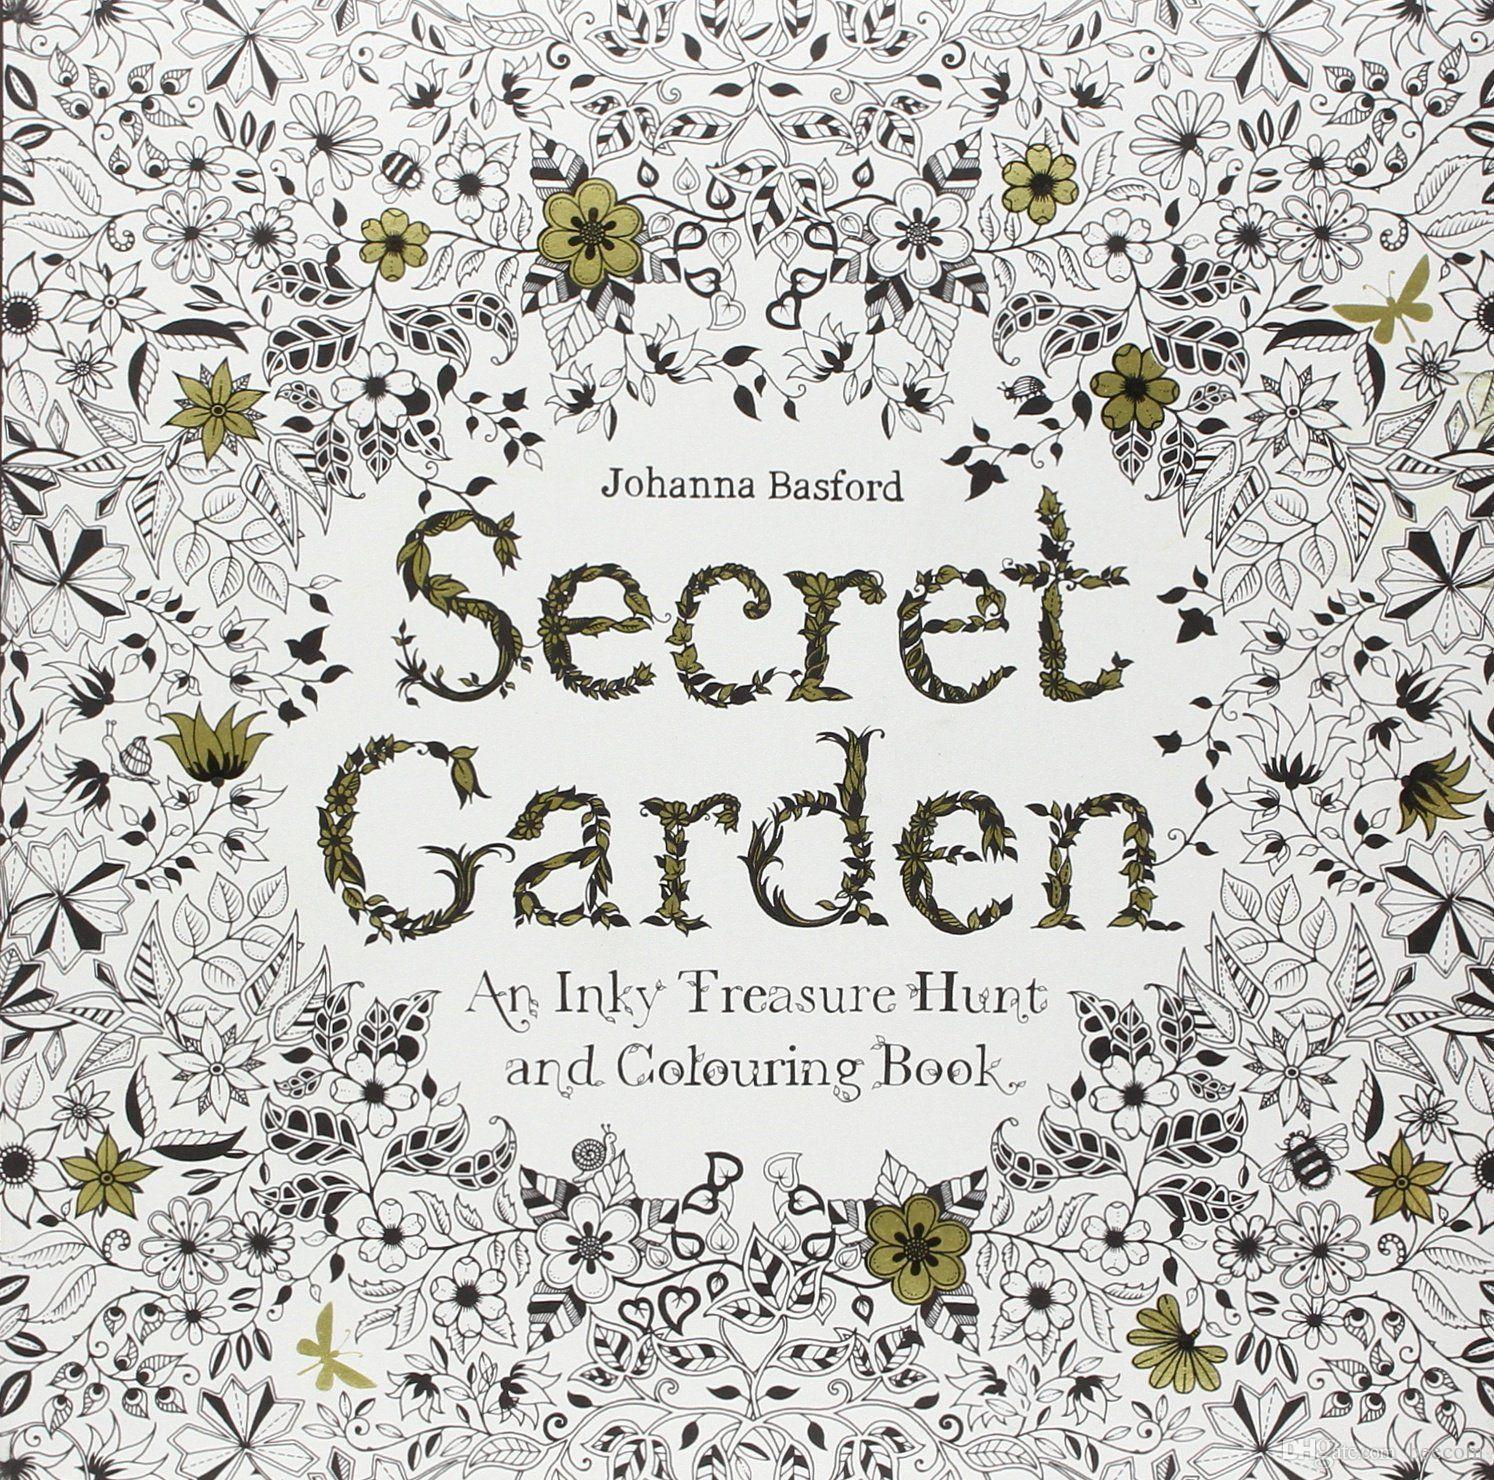 Secret Garden Coloring Book By Johanna Basford Reduce Pressure Books Painting Drawing Printable Pages For Adults Copy Colouring